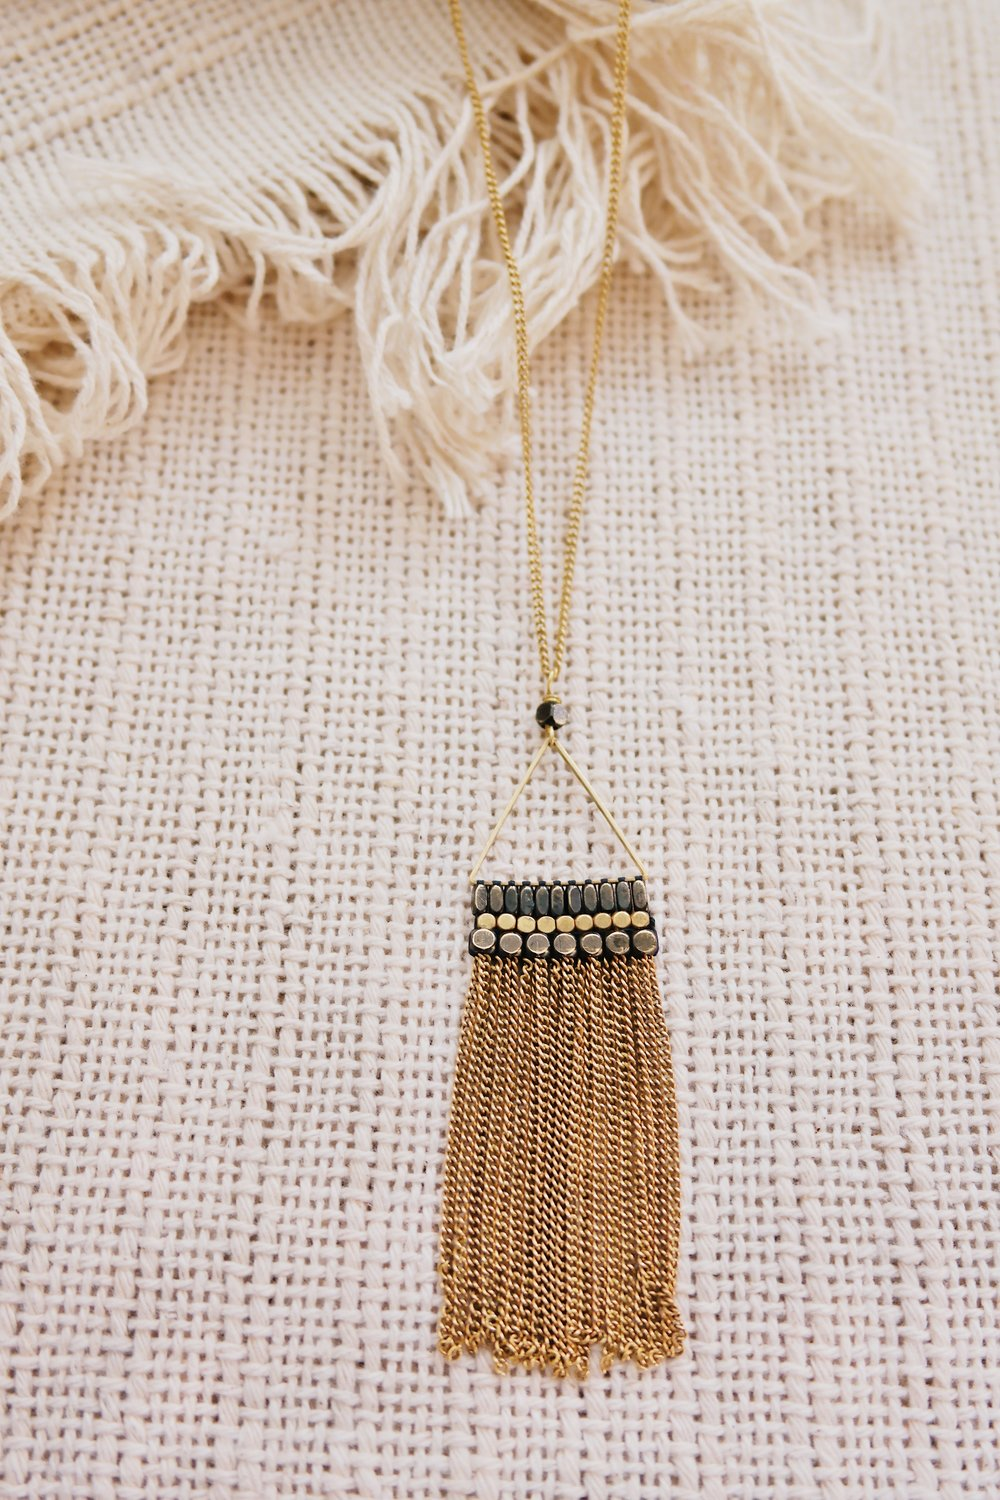 Ox Chain Tassel Necklace by The Didi Jewelry Project, TO THE MARKET, $36.00